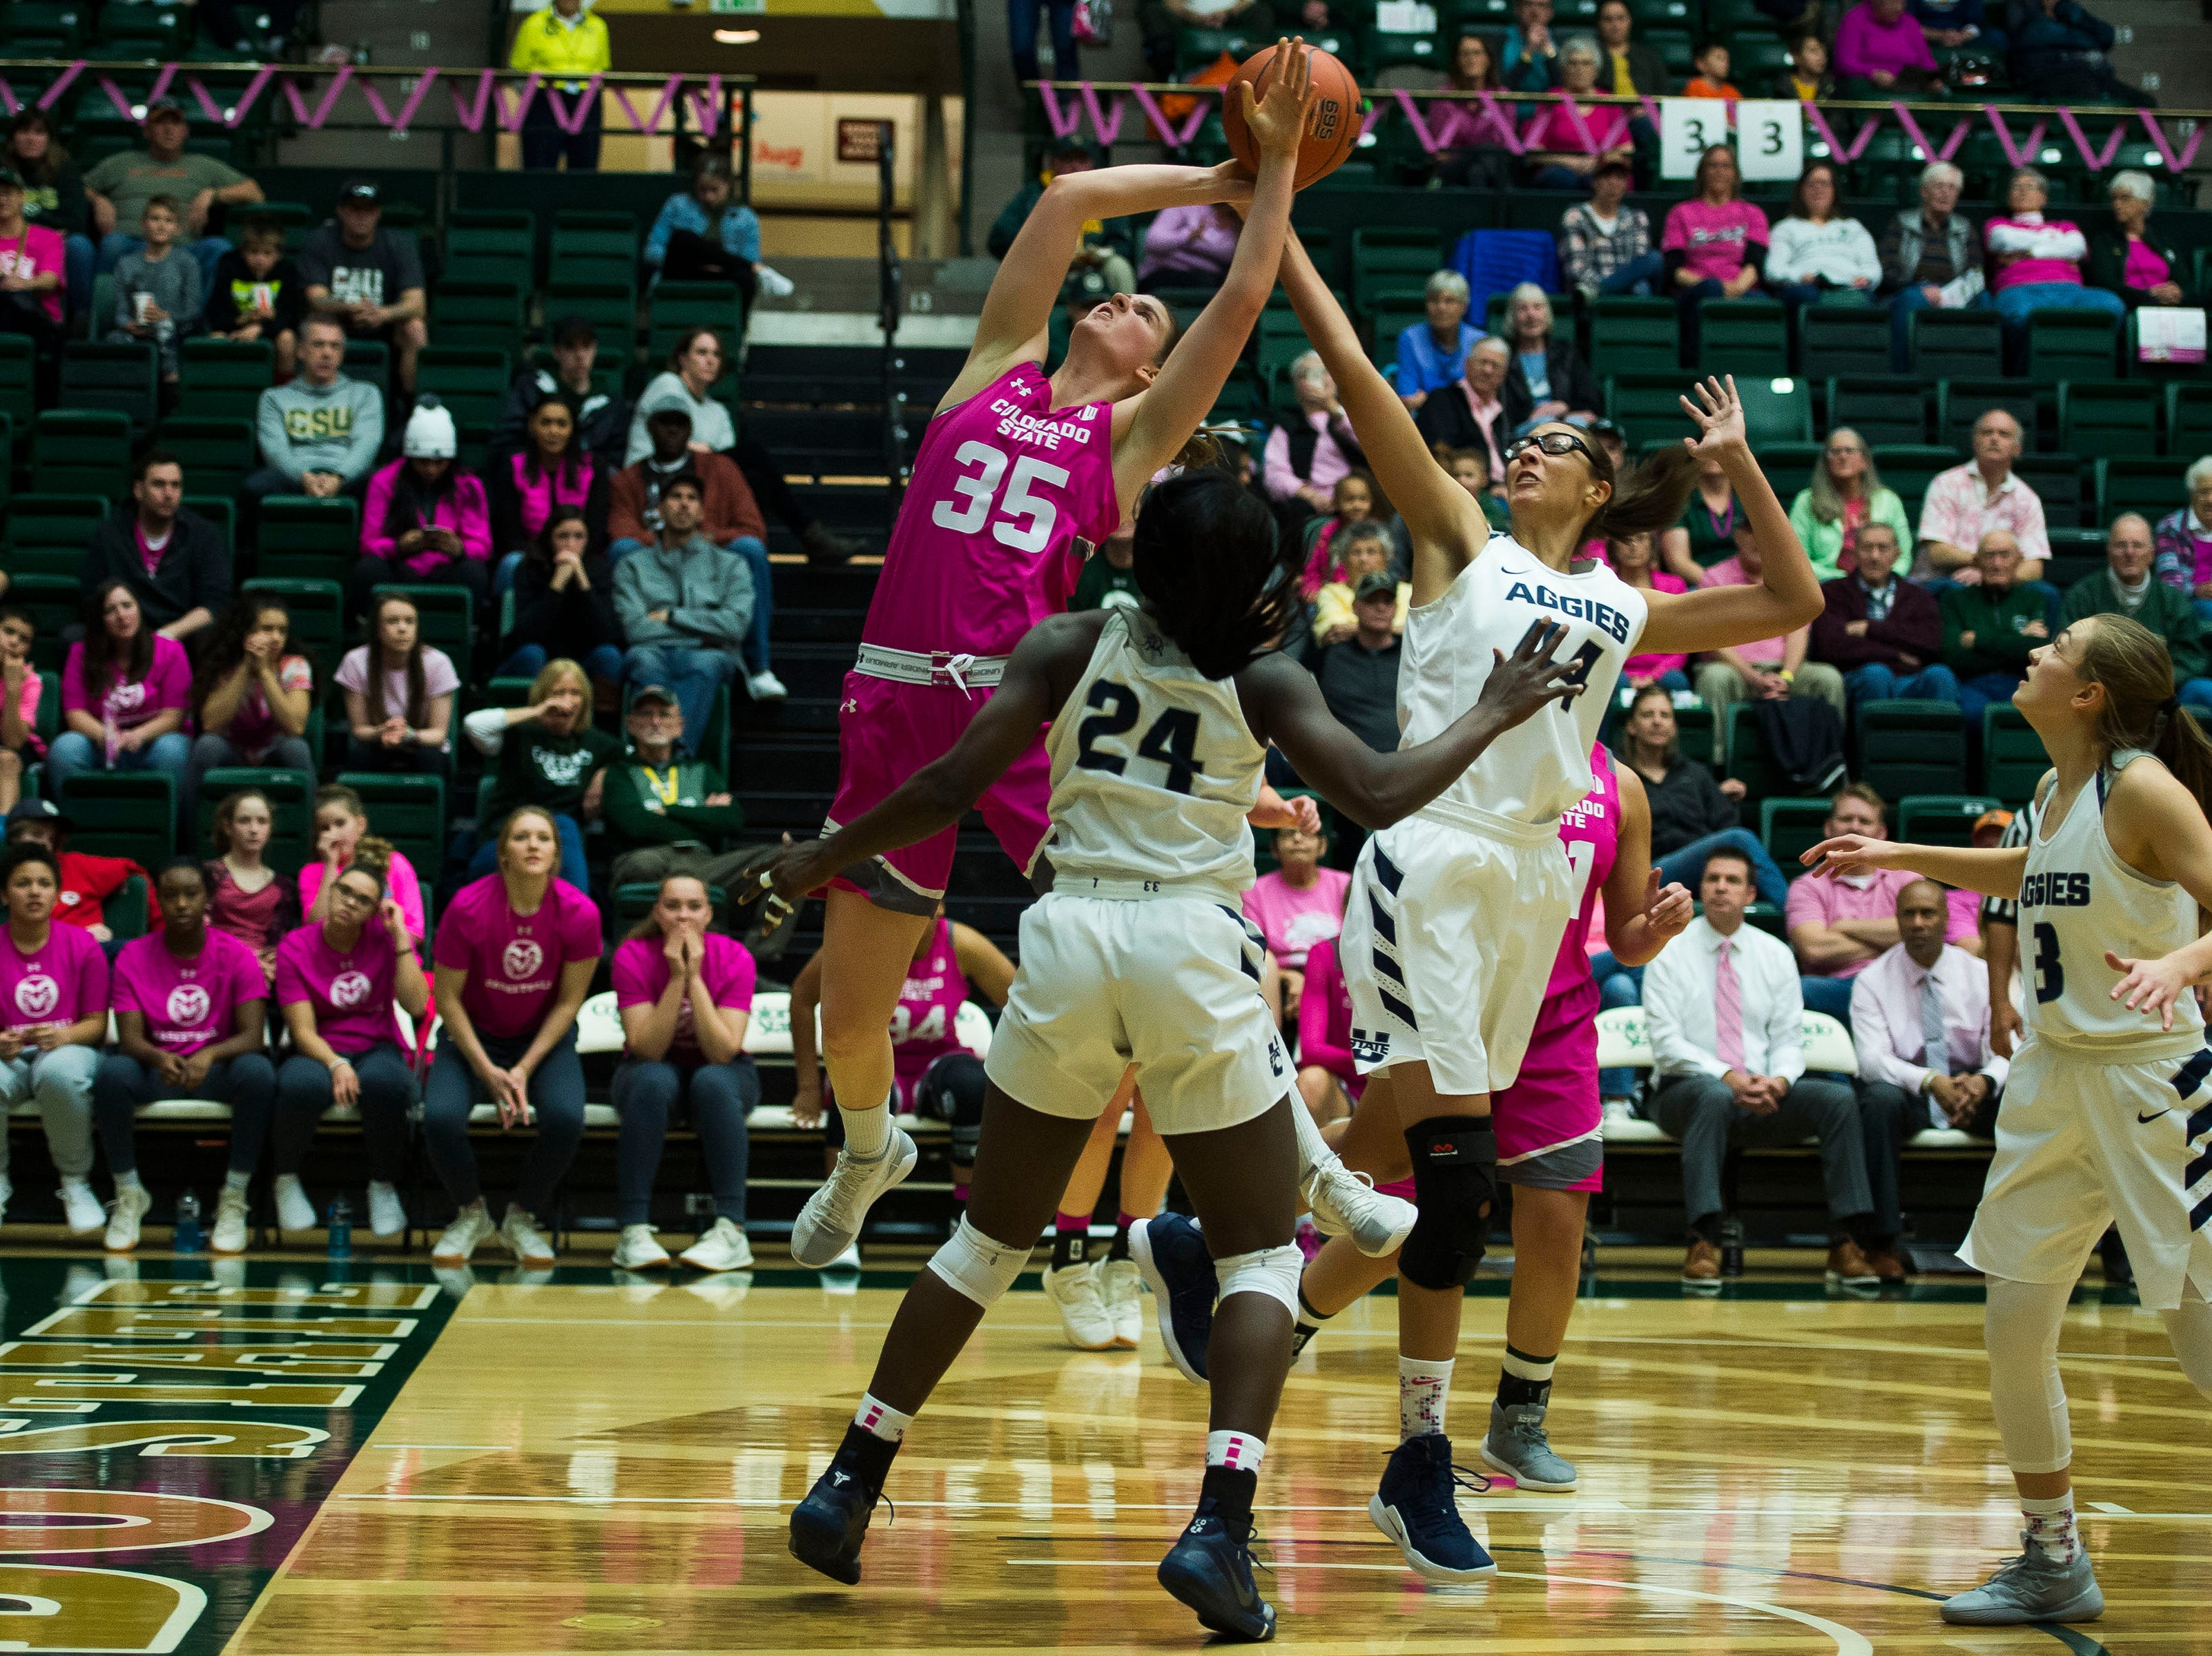 Colorado State University sophomore guard Lore Davis (35) has a shot knocked off-target by Utah State senior center Deja Mason (44) on Saturday, Jan. 19, 2019, at Moby Arena in Fort Collins, Colo.